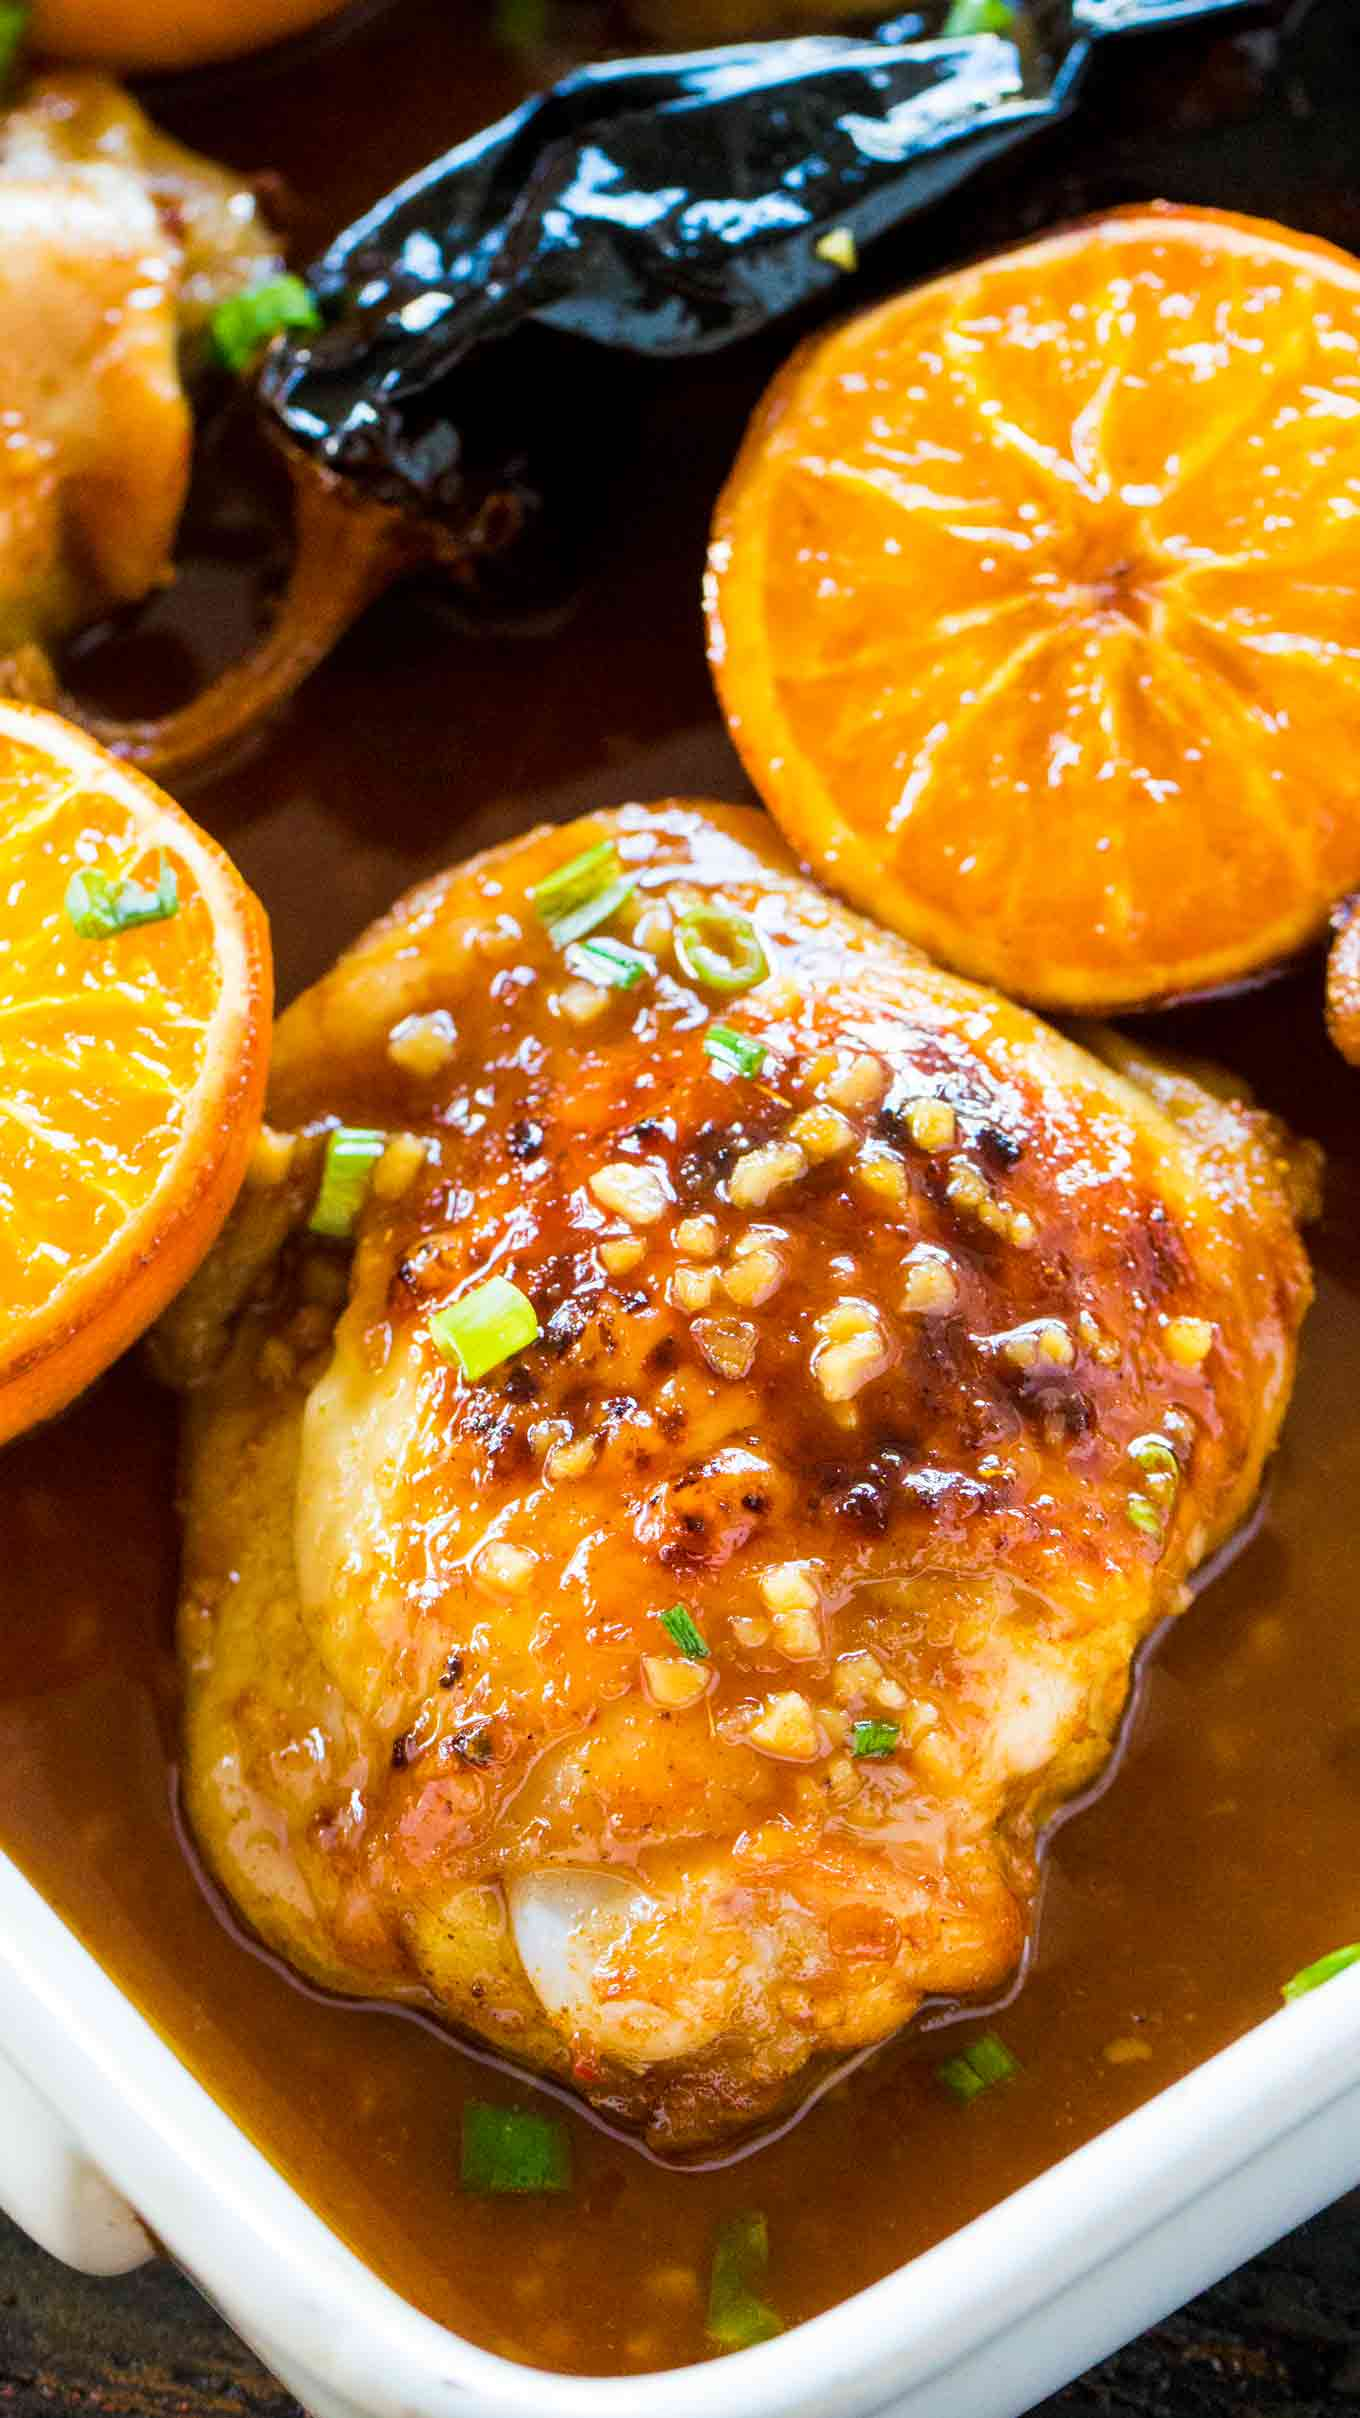 Best Chipotle Orange Chicken is sweet, spicy, crispy on the outside and tender on the inside. Easily made in one pan in just 30 minutes.